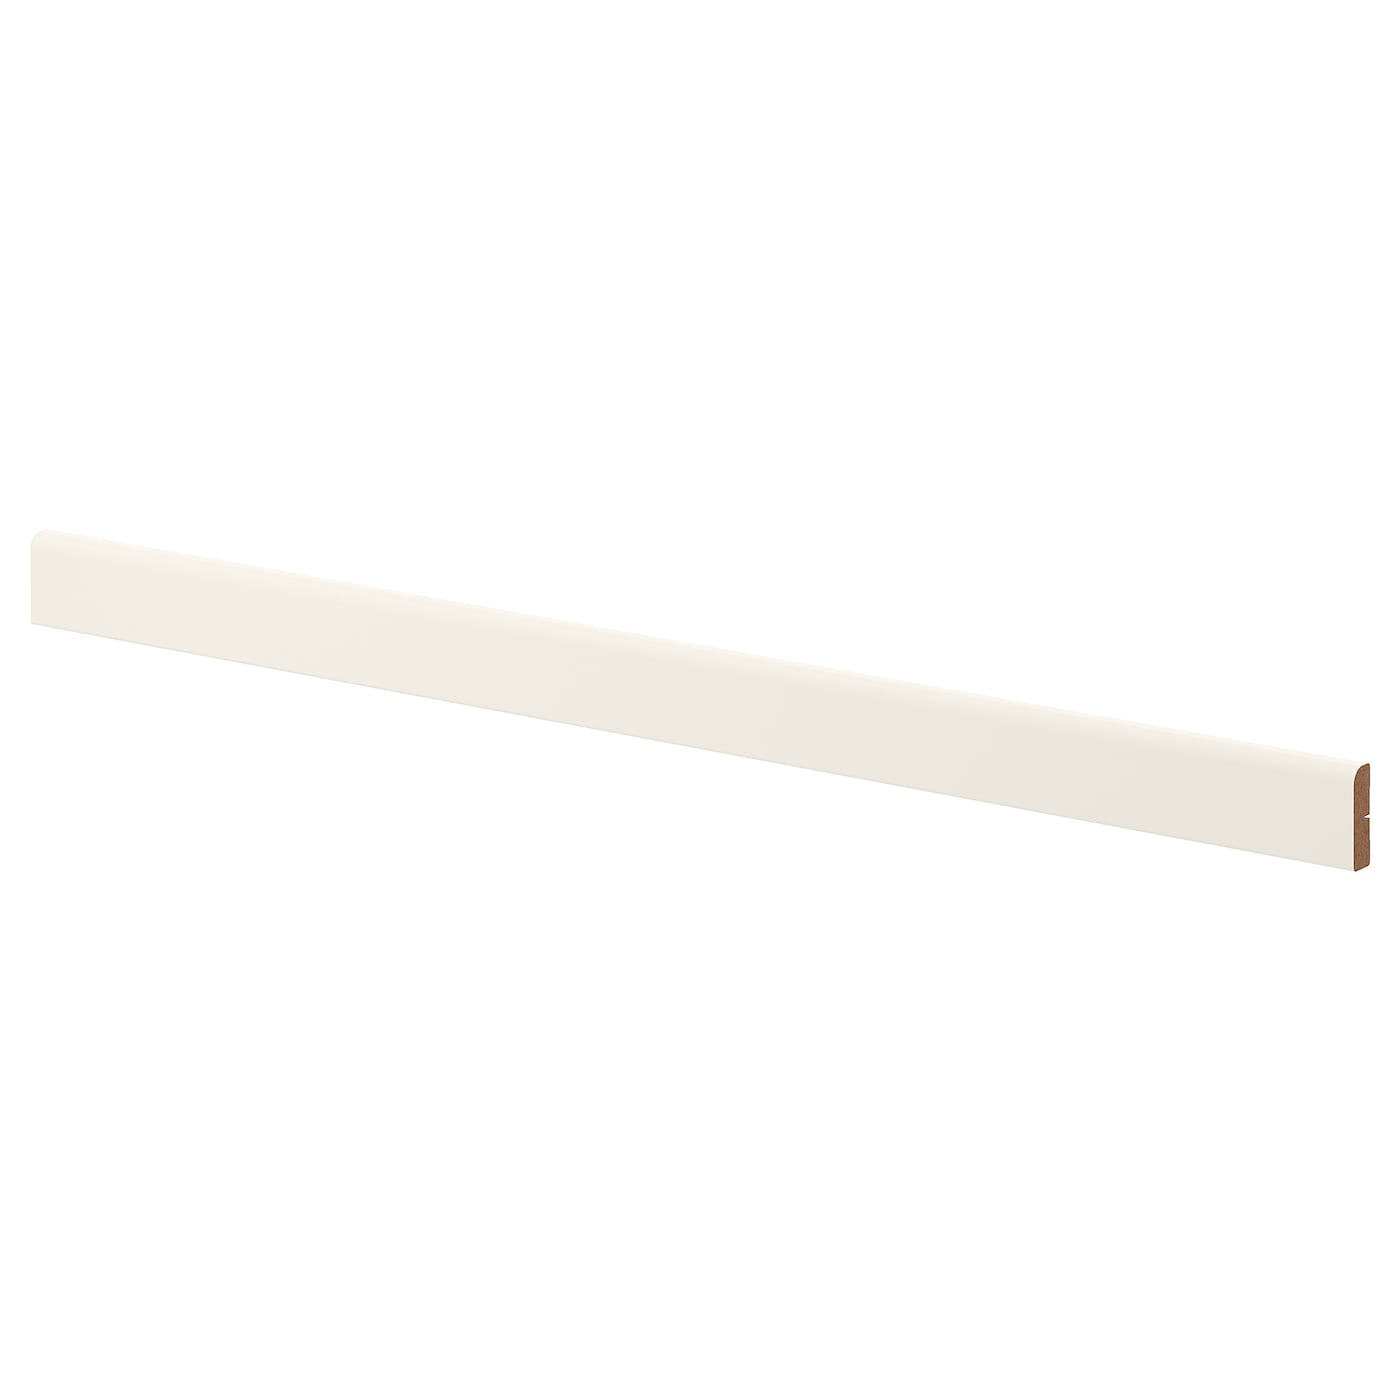 IKEA FÖRBÄTTRA rounded deco strip/moulding Can be cut to desired length.